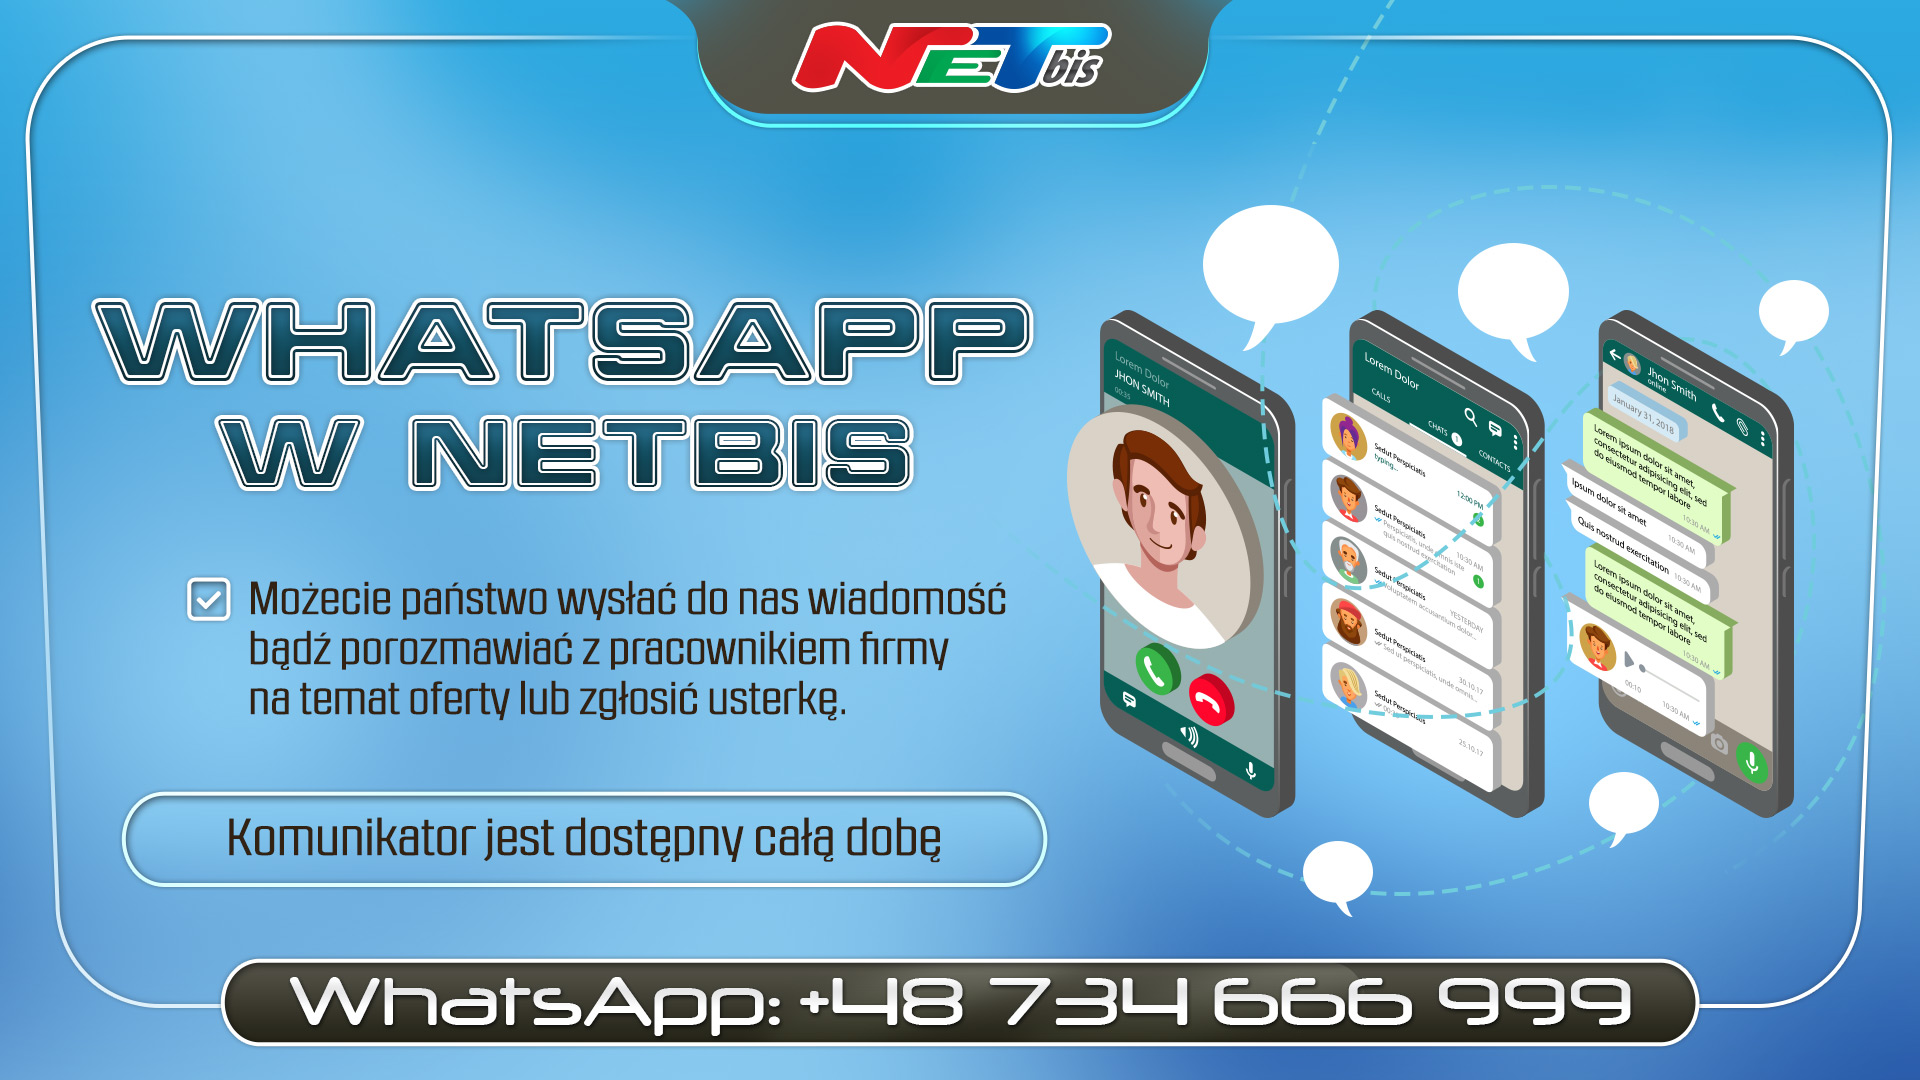 NETbis-WhatsApp